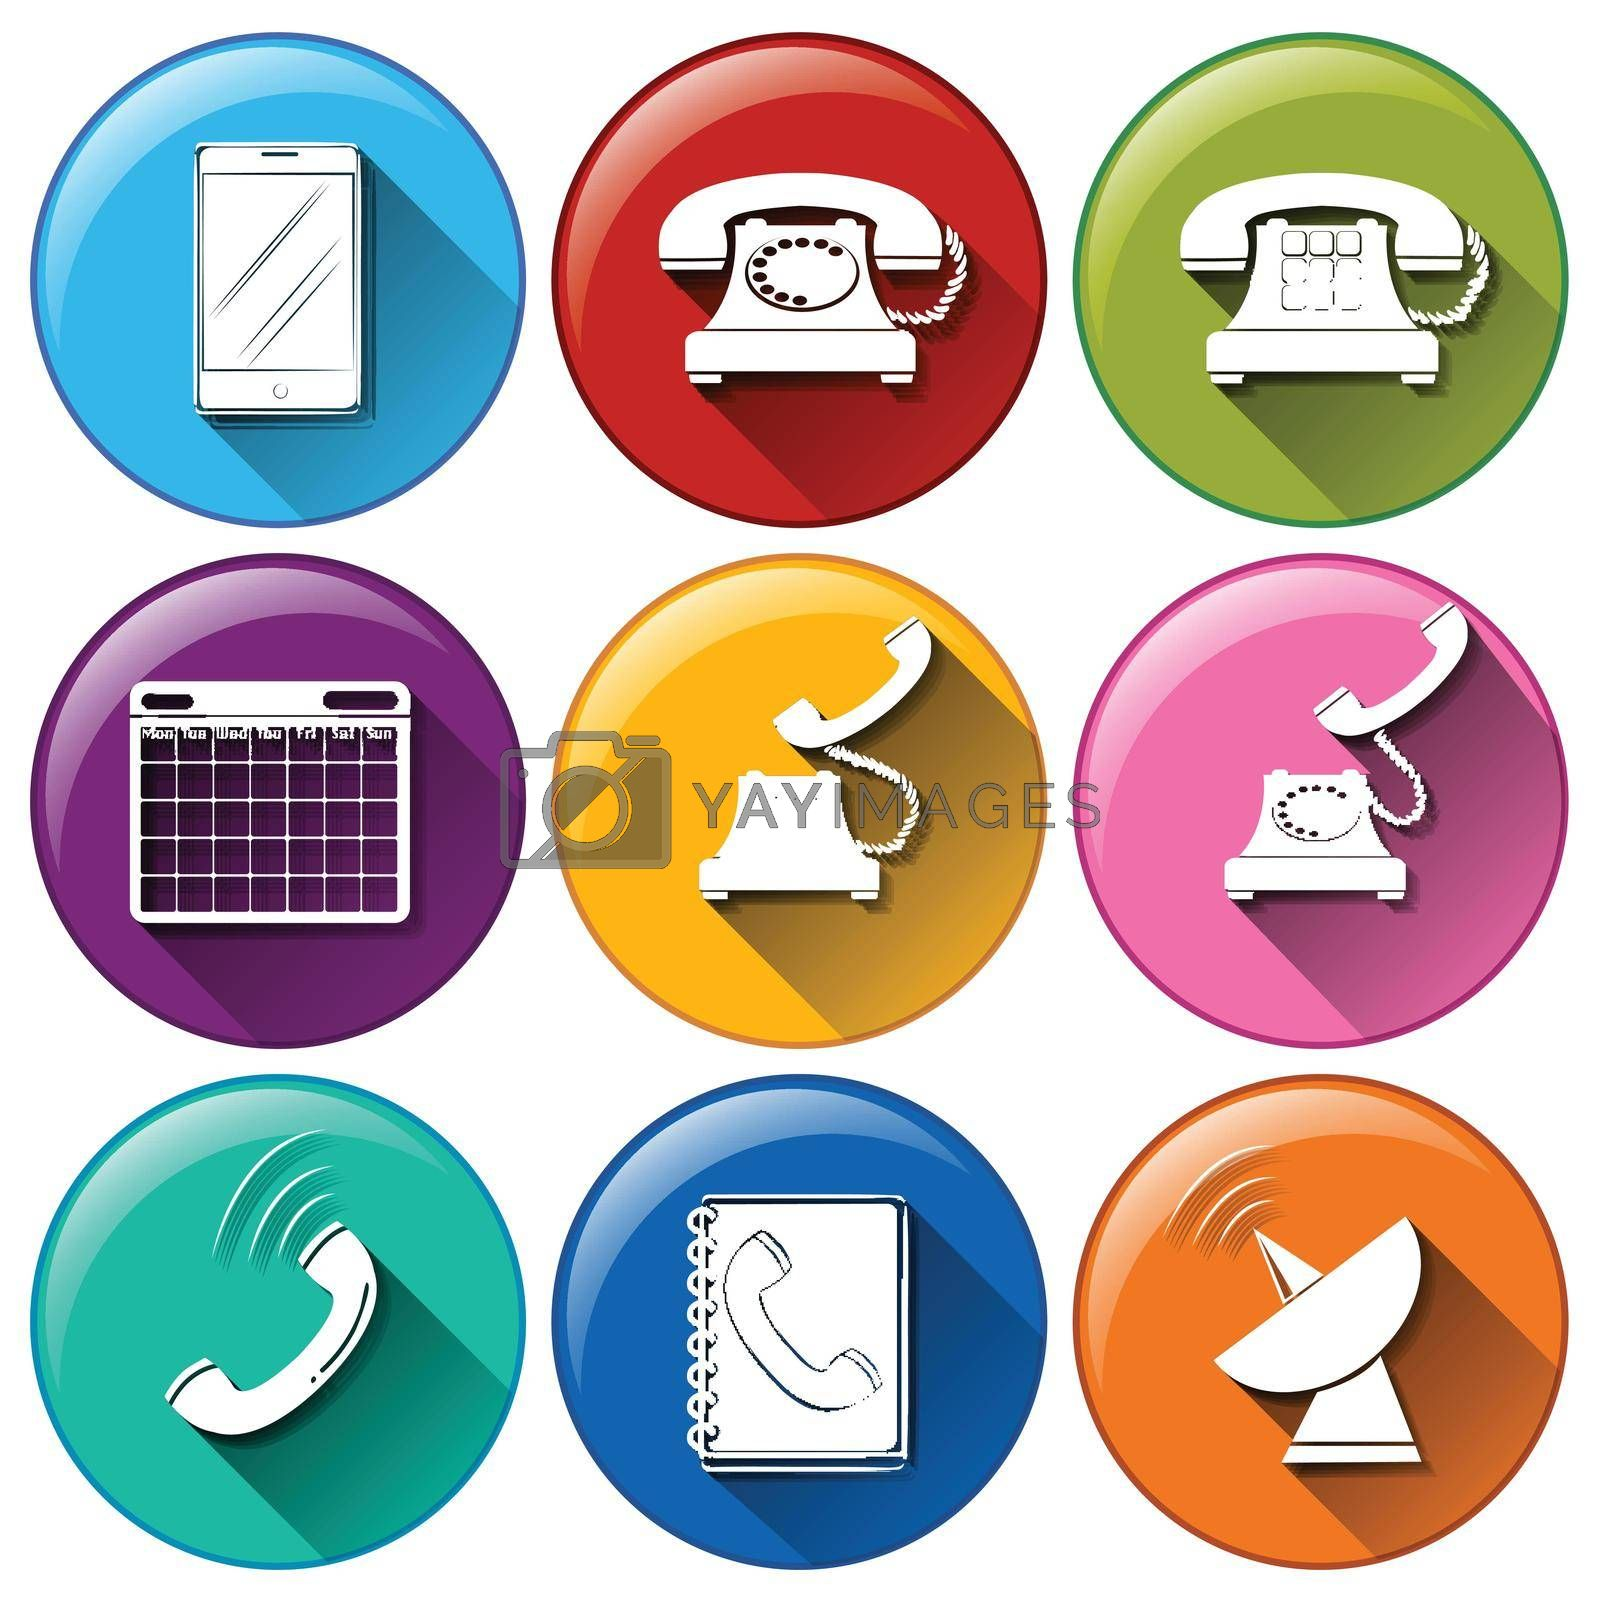 Royalty free image of Communication icons by iimages